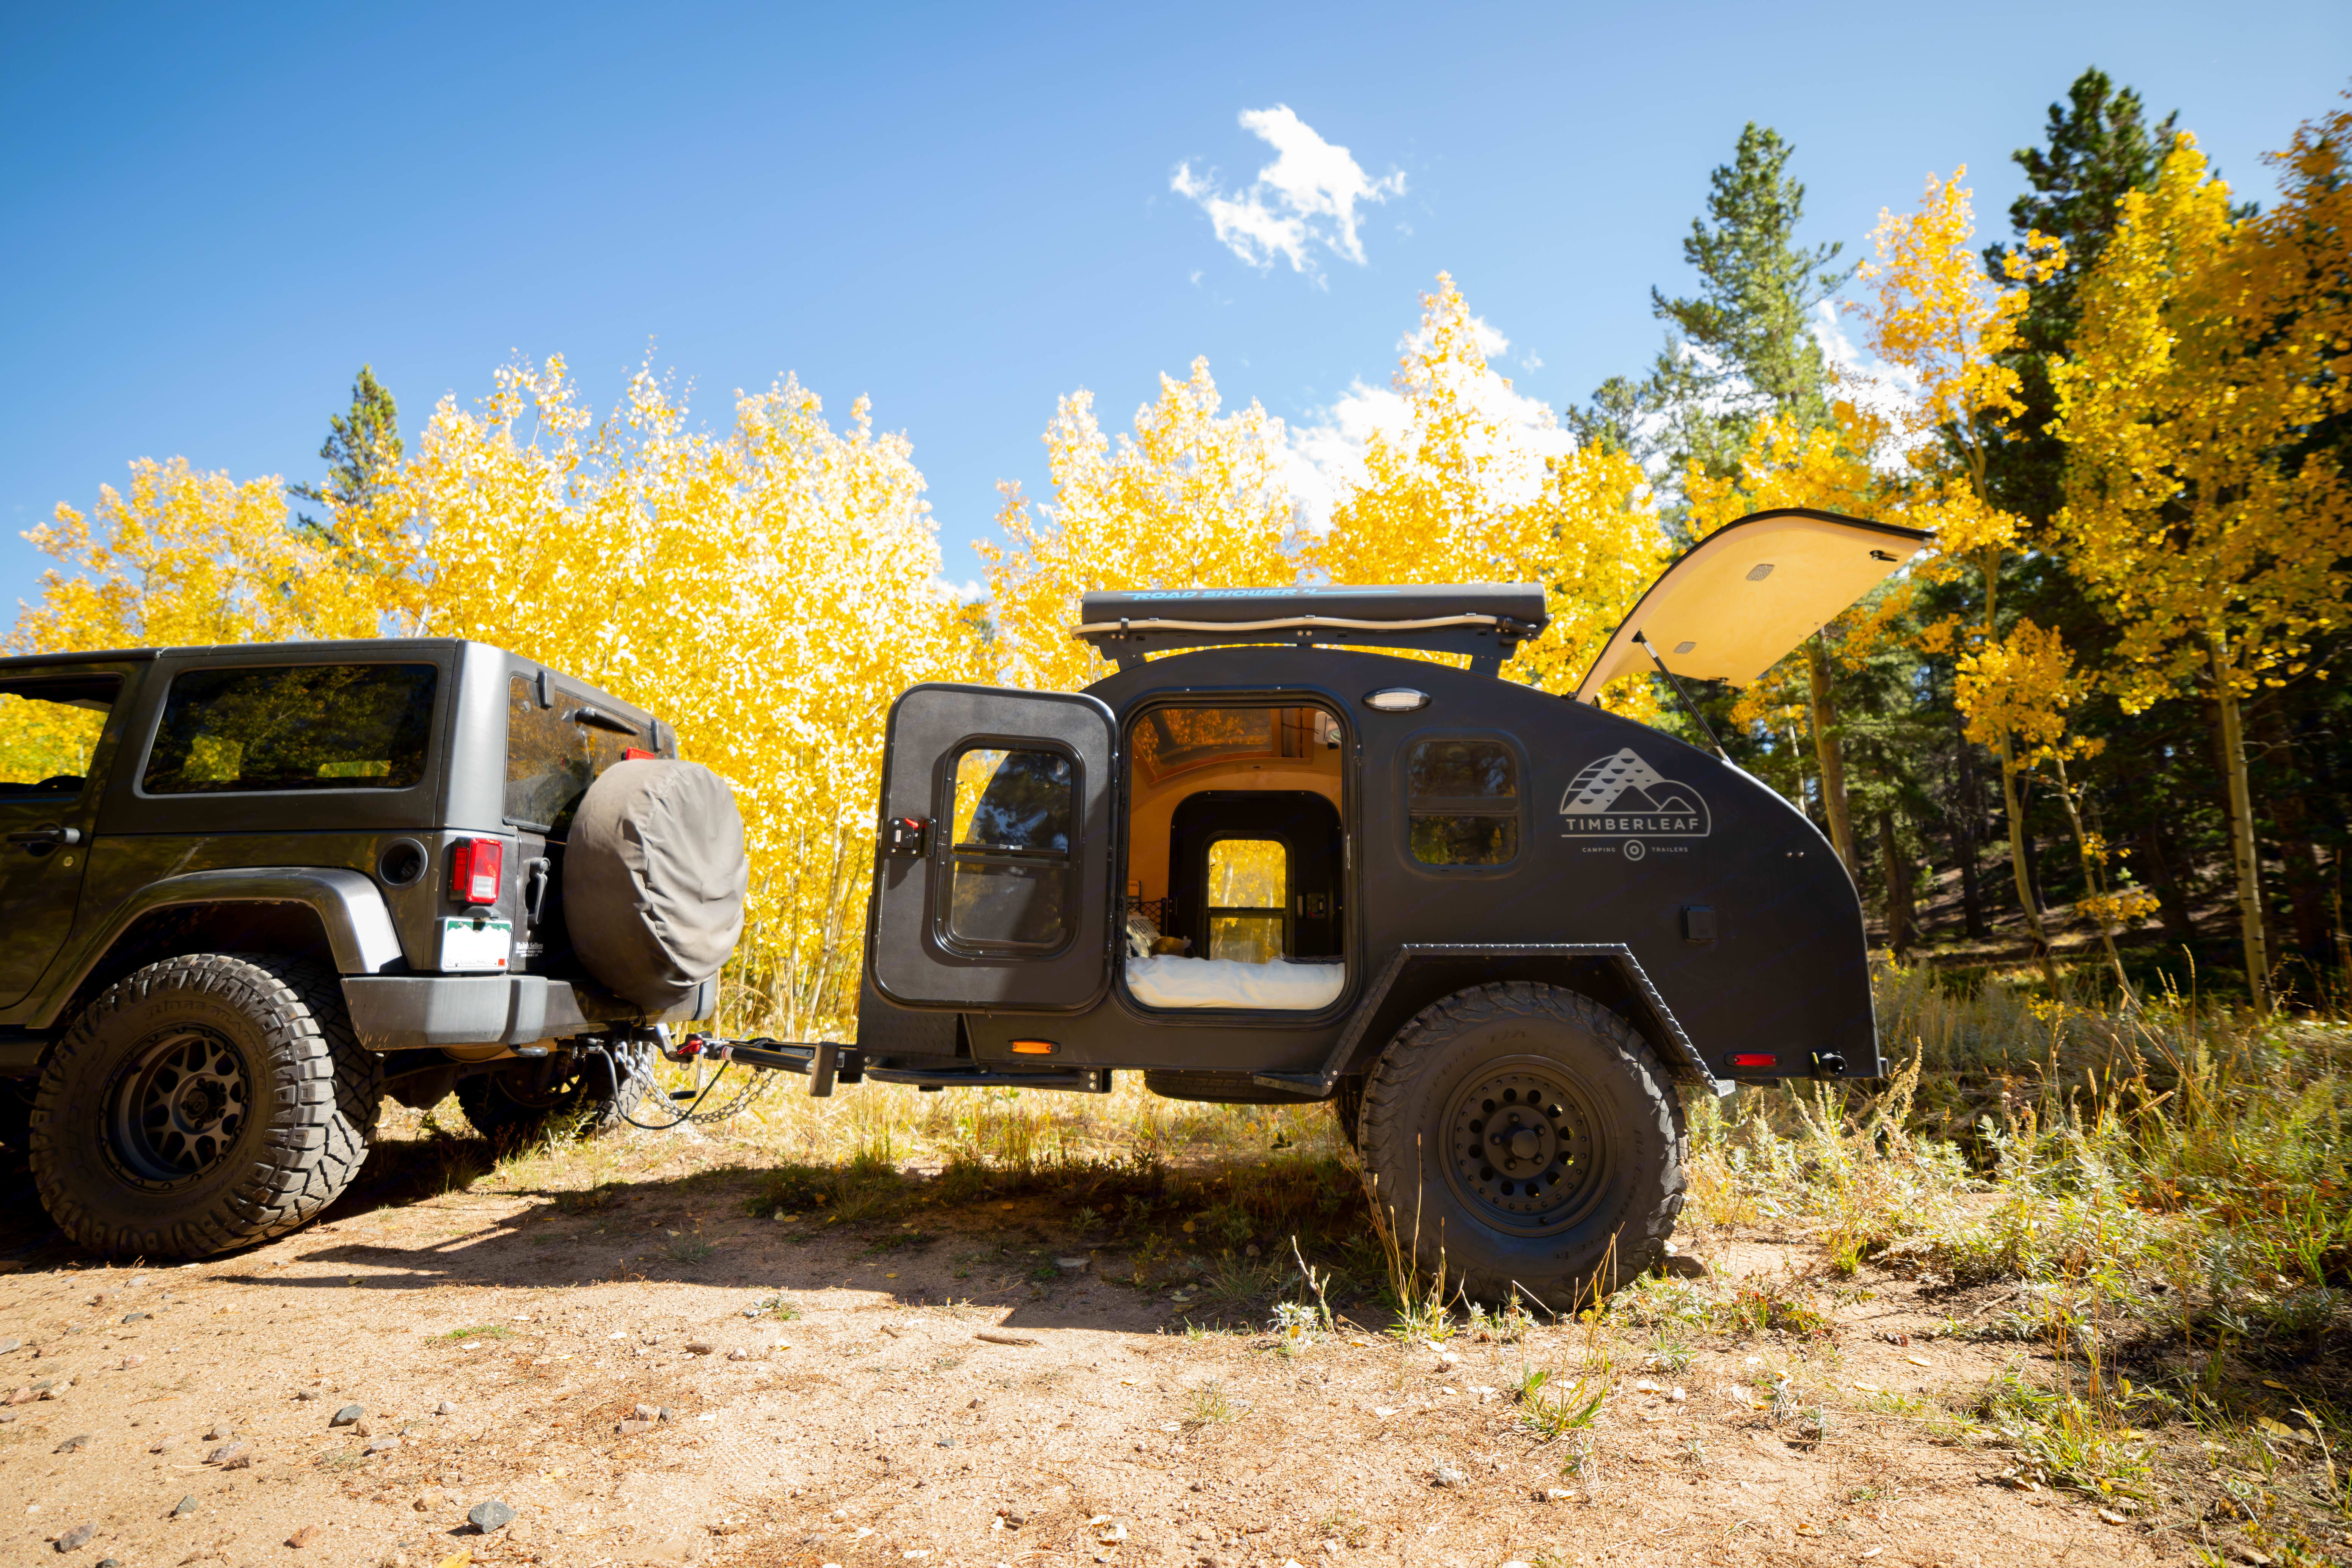 """Timon is the ultimate adventure partner, going anywhere you'd want to go and providing a safe and comfortable place to come back to after a day exploring. With 35"""" tires and a lift, there is plenty of clearance to cover most of Colorado's less traveled areas. At only 1400 lbs, most cars have the ability to tow this trailer to wherever your heart desires.. Timberleaf Pika 2019"""